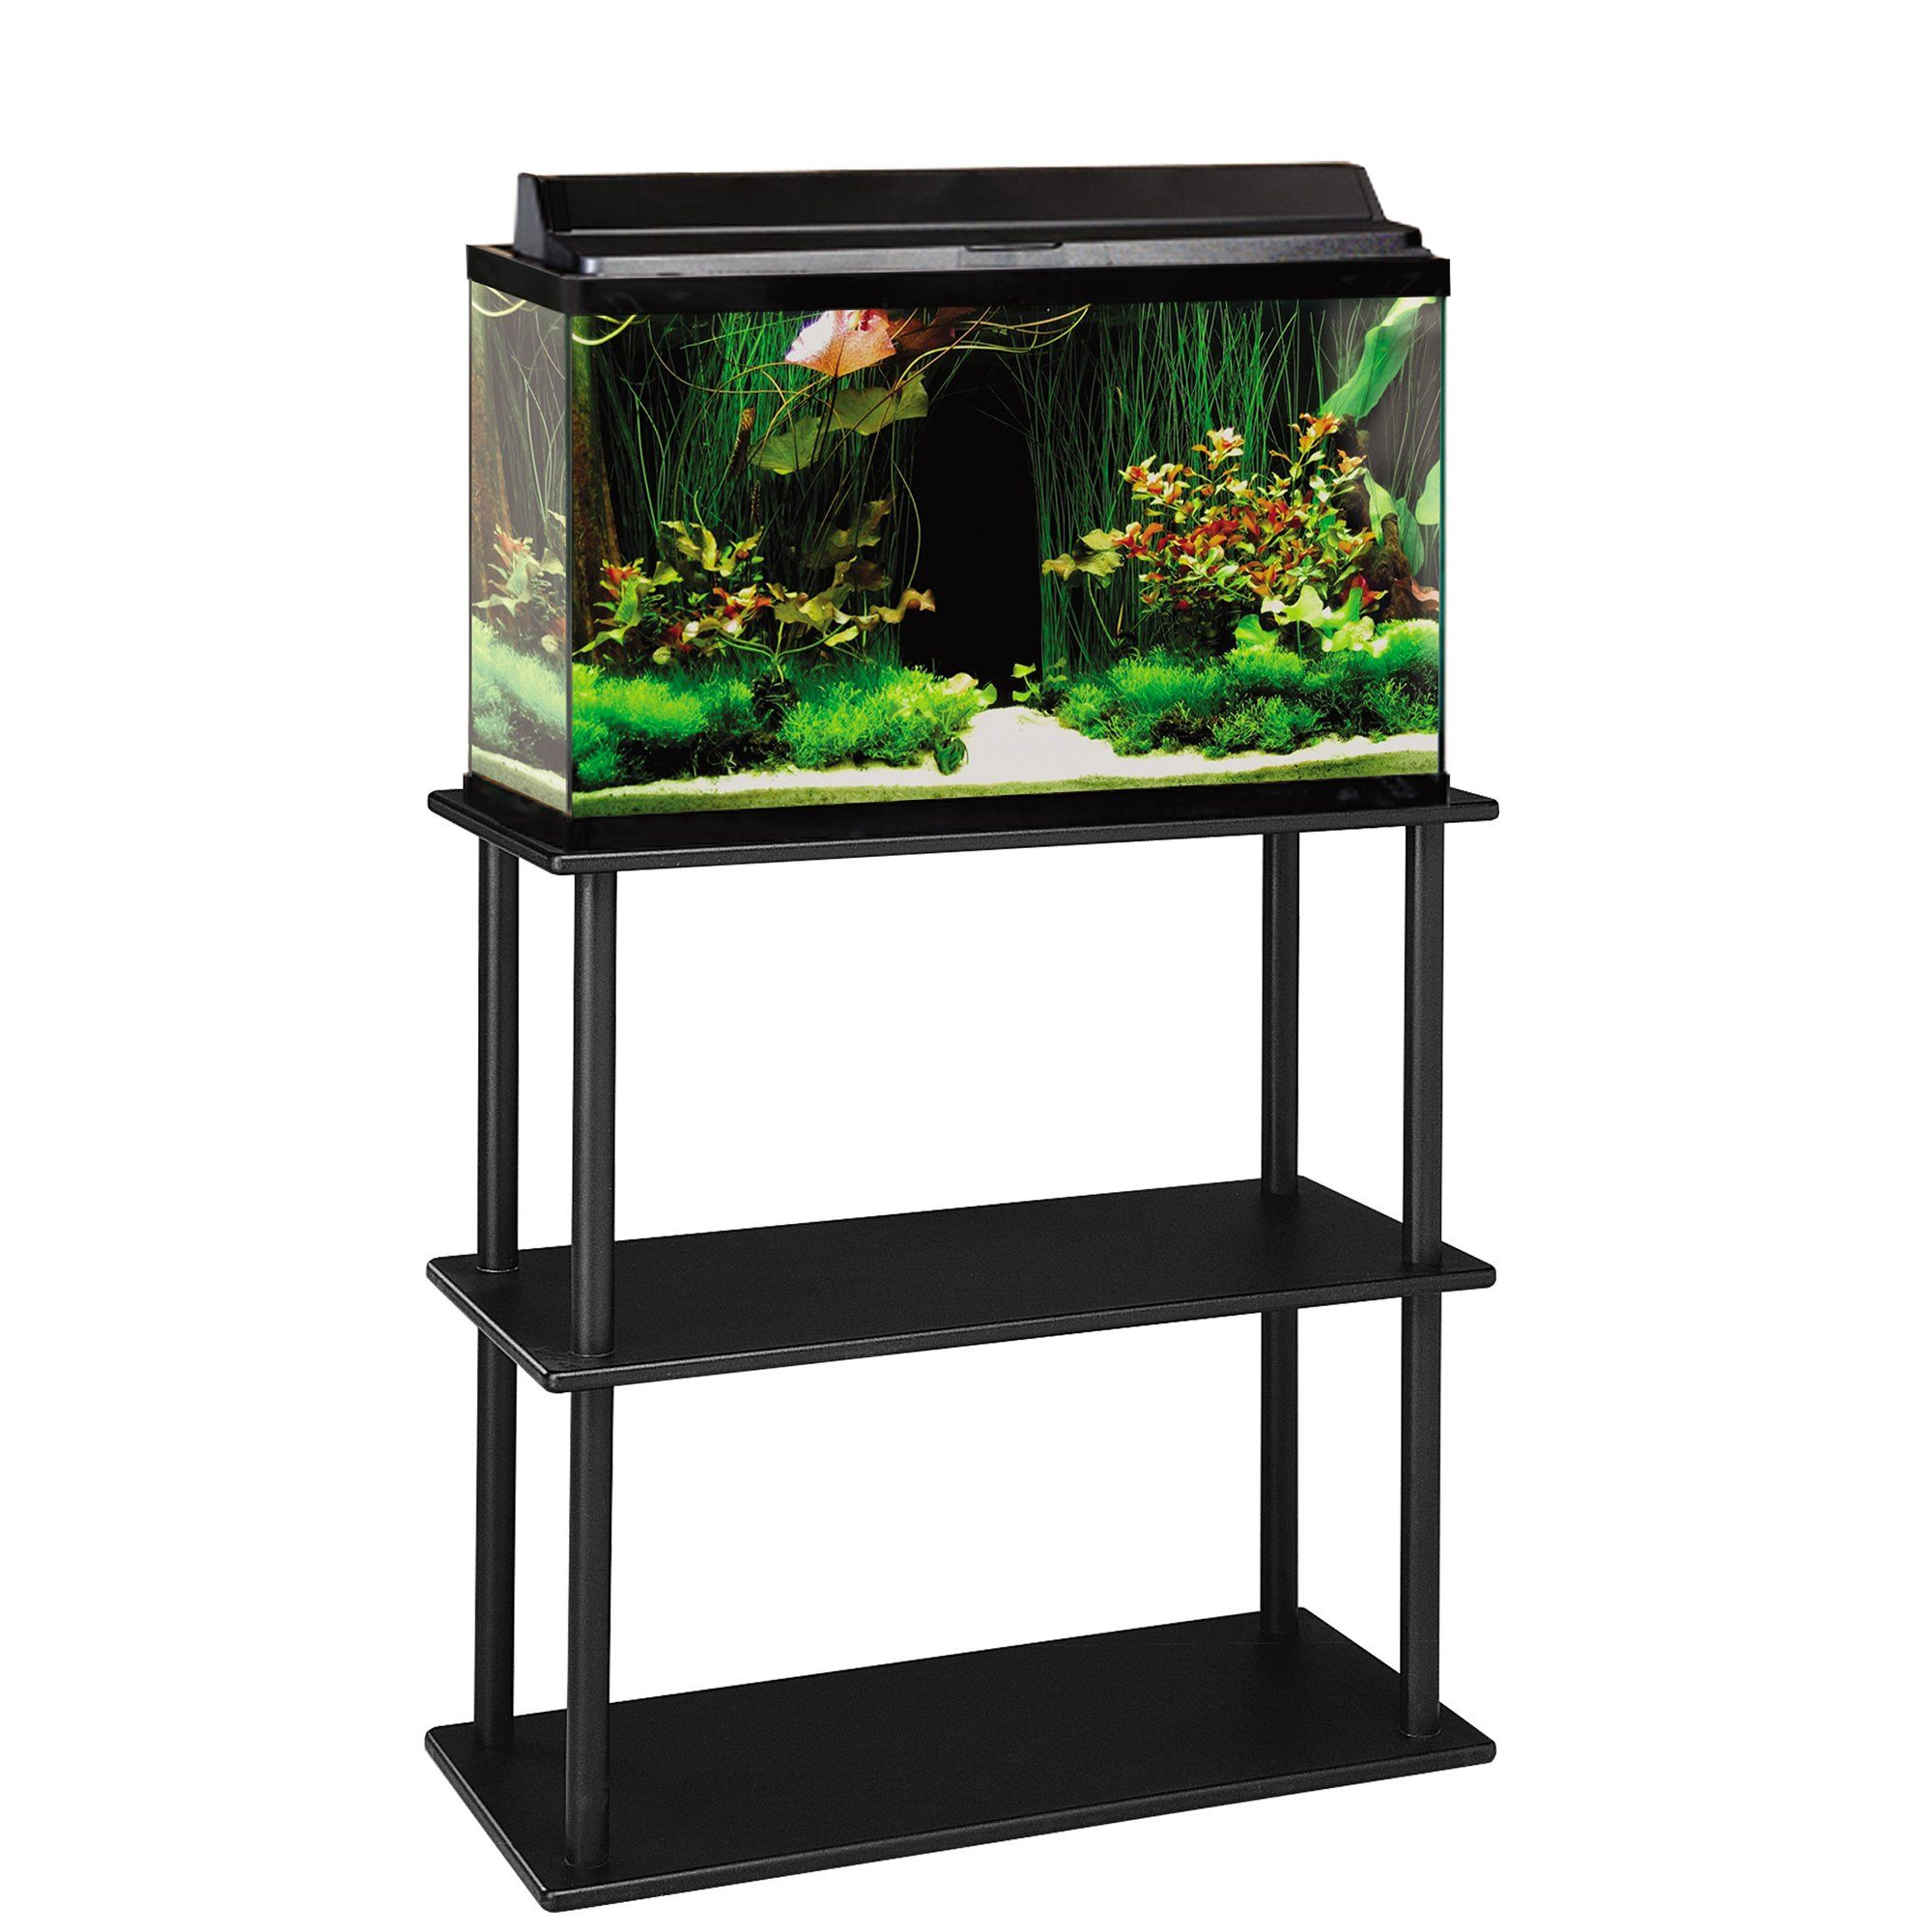 31 W X 13 5 D X 27 87 H Black Stand With Open Shelf Fits 20 29 And 37 Gallon Tanks Aquarium Stand 29 Gallon Aquarium Aquarium